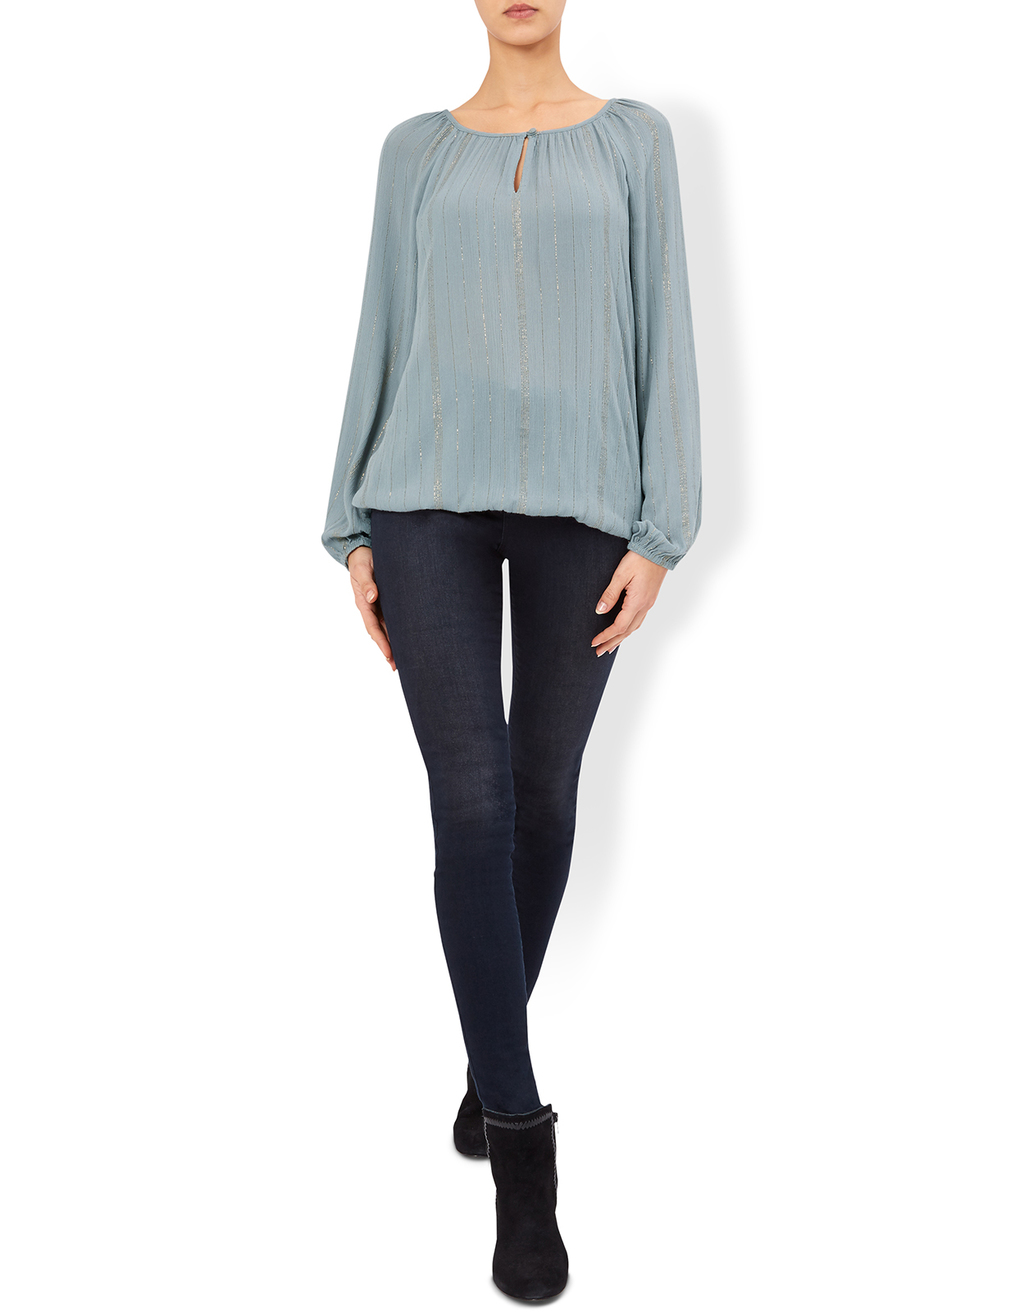 Remy Long Sleeve Blouse - pattern: plain; sleeve style: balloon; style: blouse; predominant colour: pale blue; occasions: evening, work, occasion; length: standard; neckline: peep hole neckline; fibres: polyester/polyamide - 100%; fit: loose; sleeve length: long sleeve; texture group: sheer fabrics/chiffon/organza etc.; pattern type: fabric; season: a/w 2016